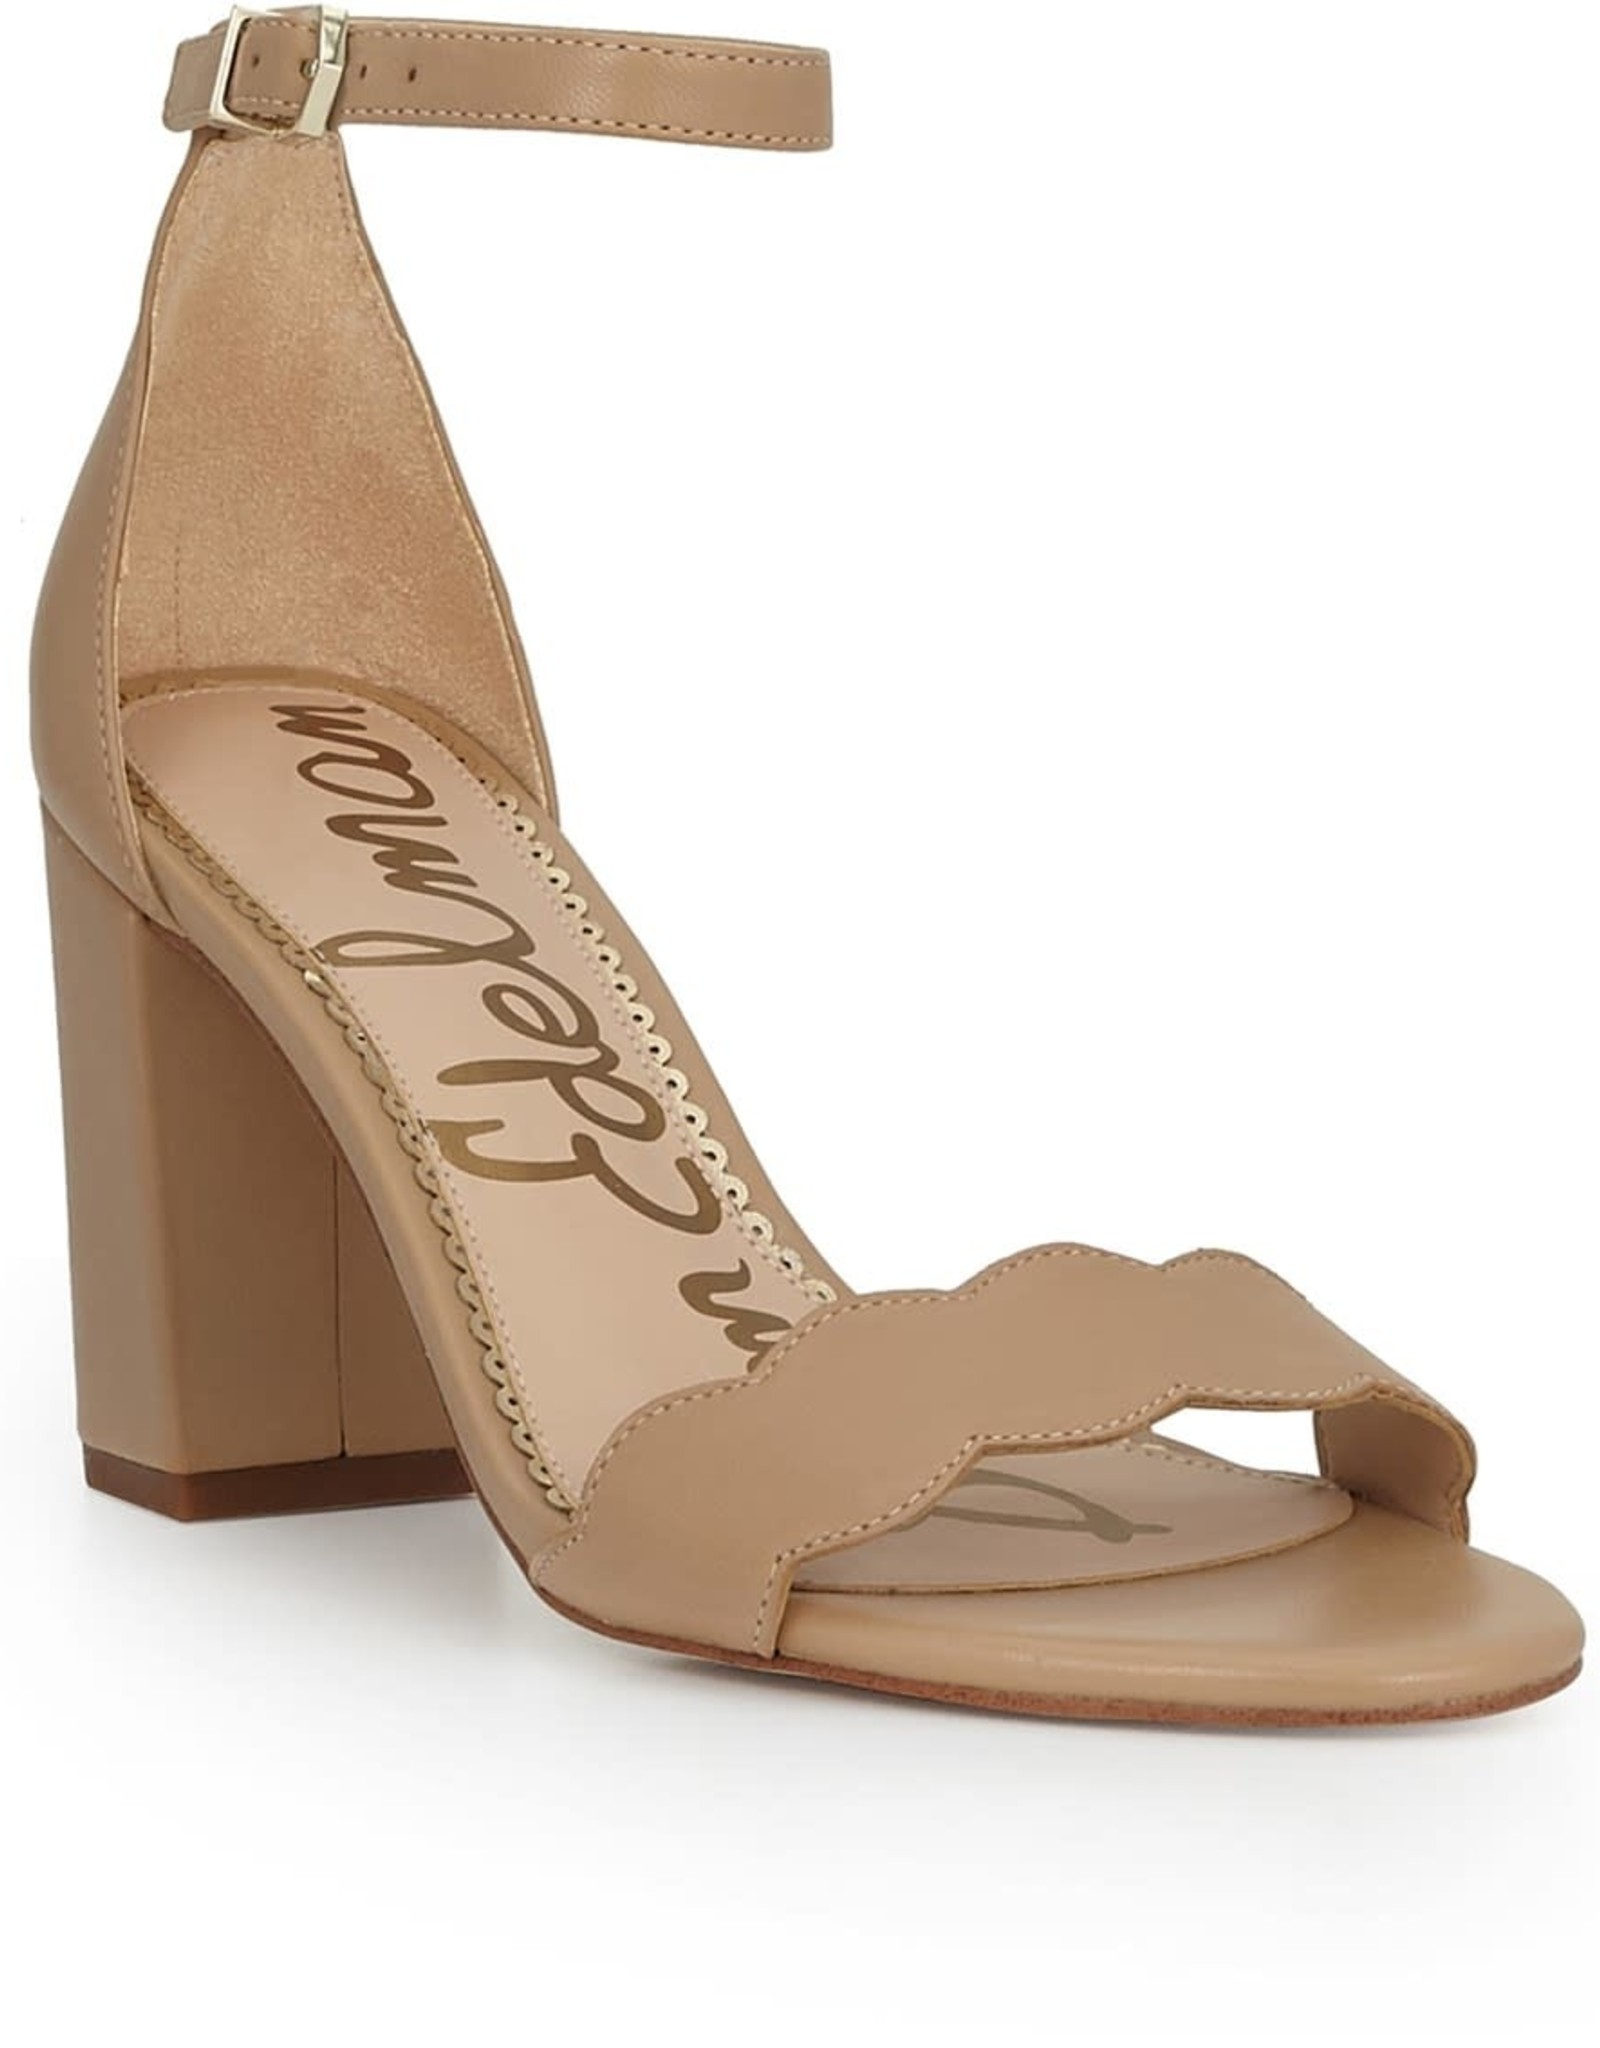 Sam Edelman Sam Edelman Odila Ankle Strap Sandal in Soft Beige Leather